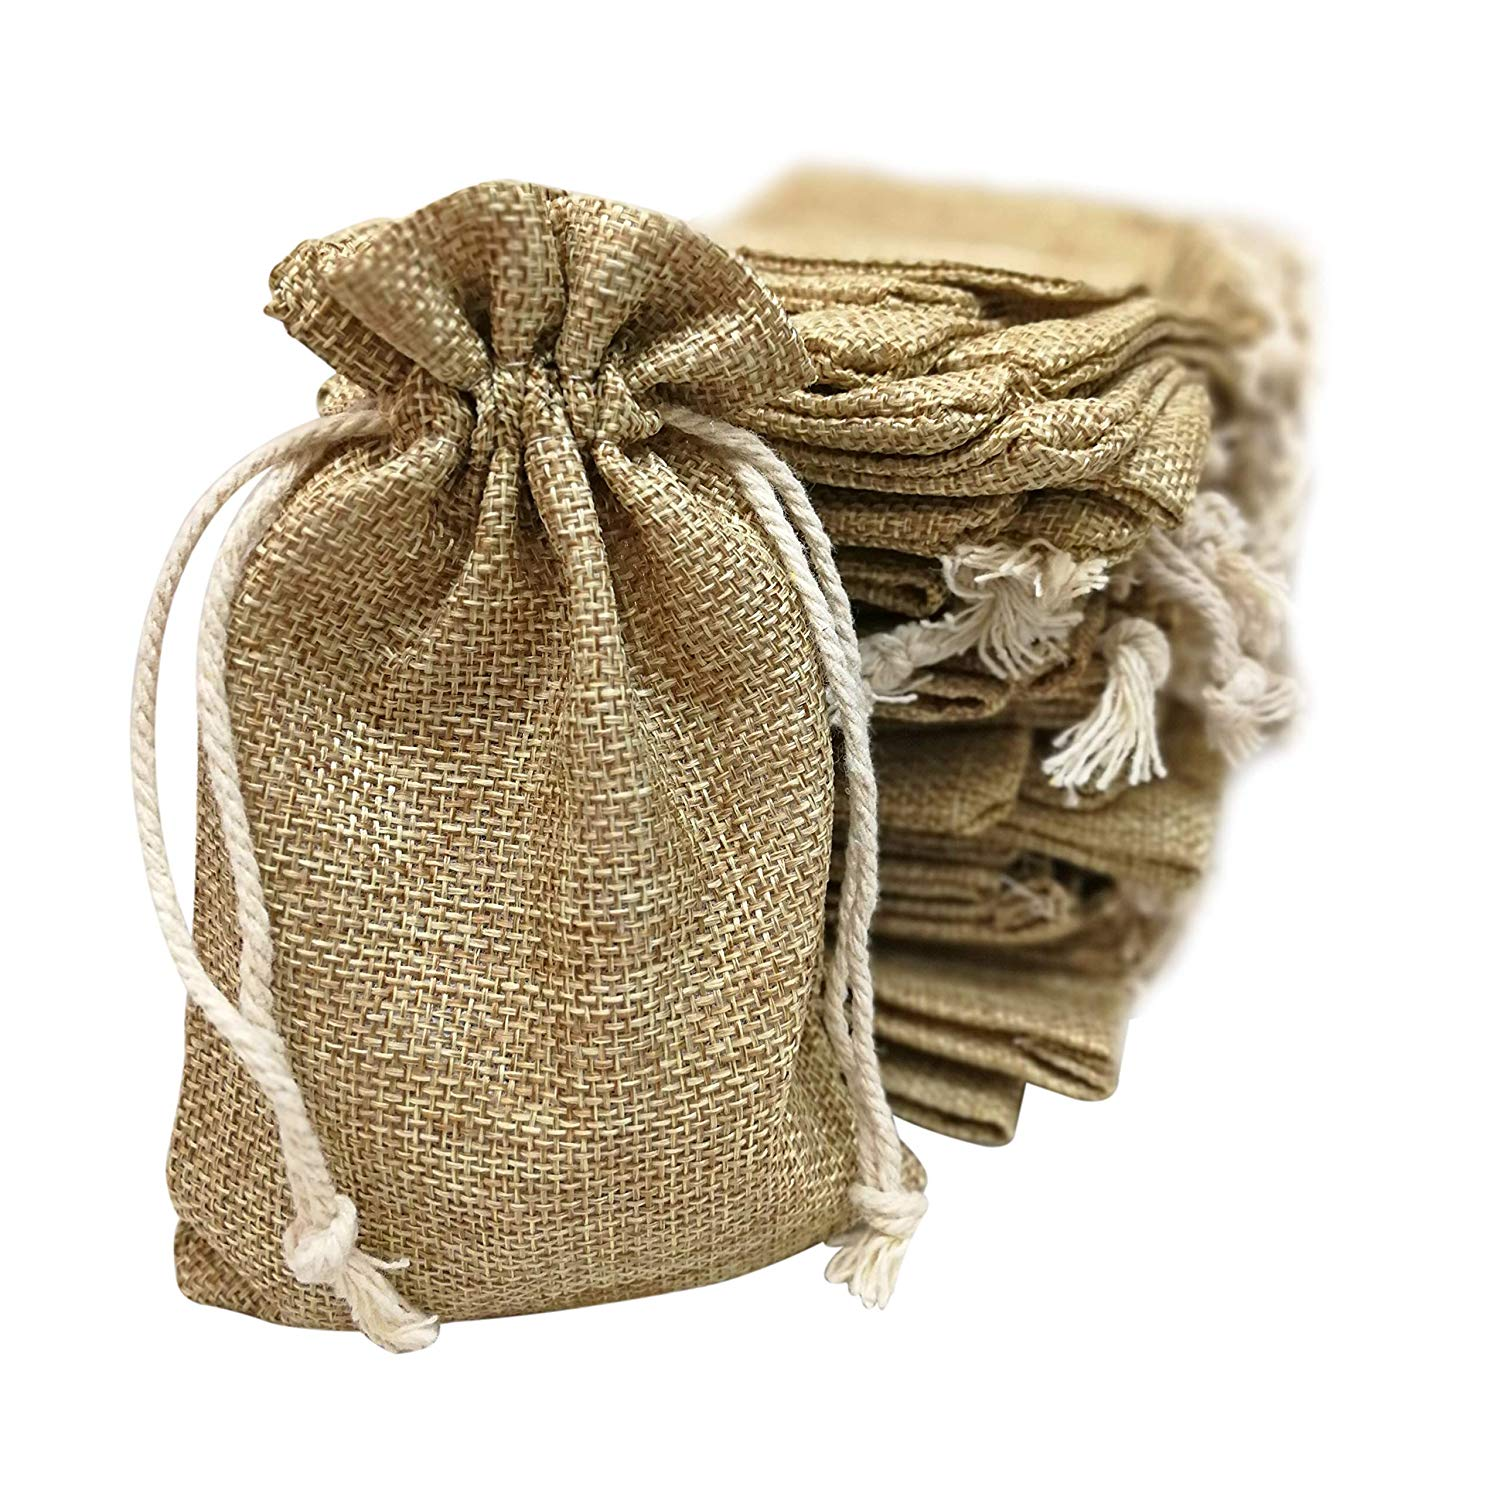 258c7033f Get Quotations · 50 Small Burlap Bags with Drawstring, 4x6 Inch Gift Bag  Bulk Pack - Wedding Party